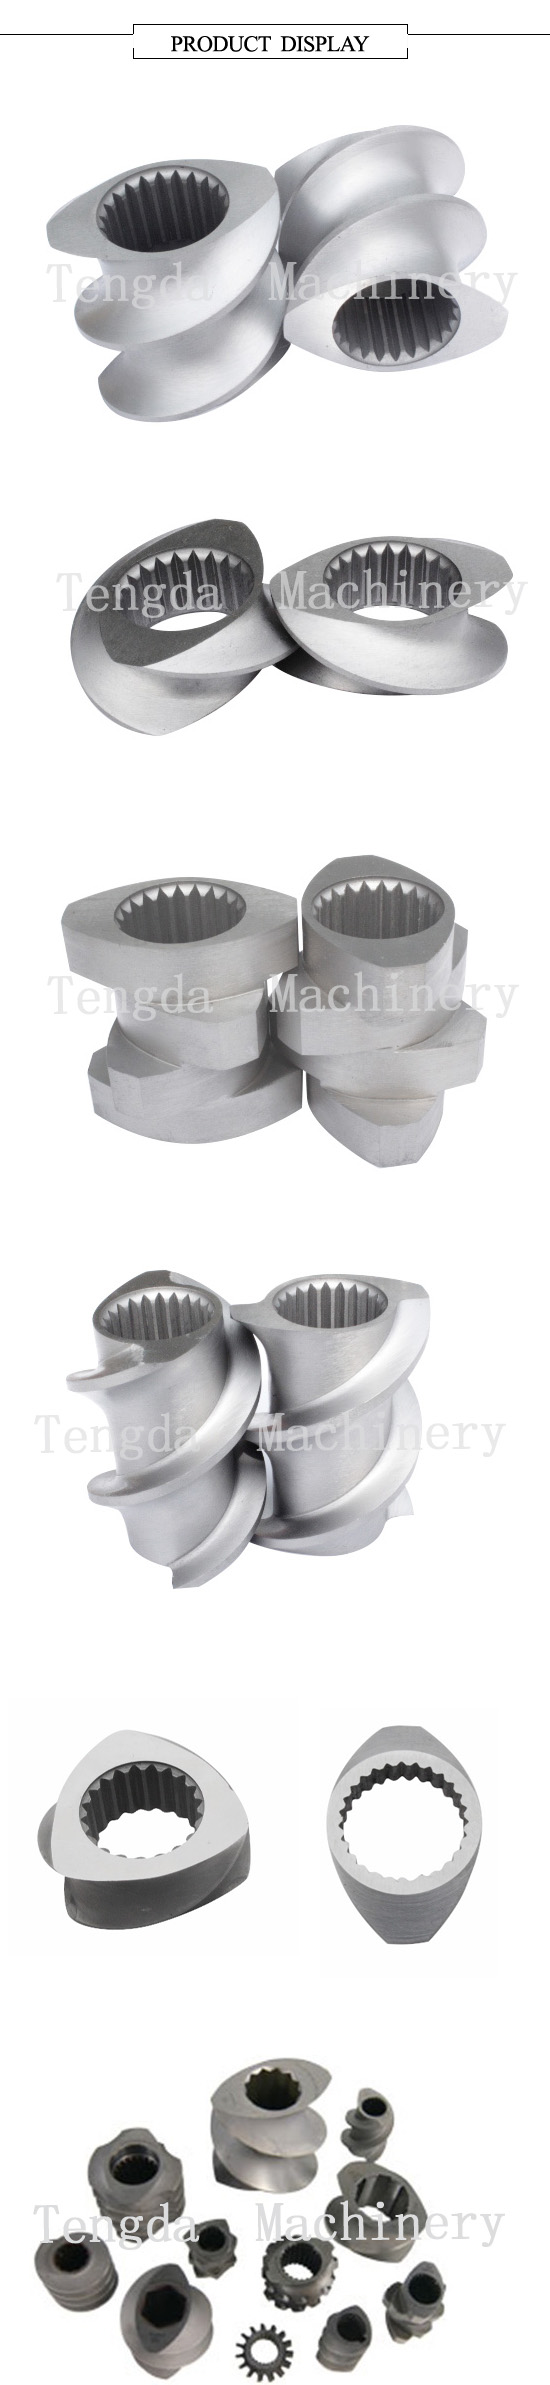 Screw and Barrel for Plastic Recycling Machine